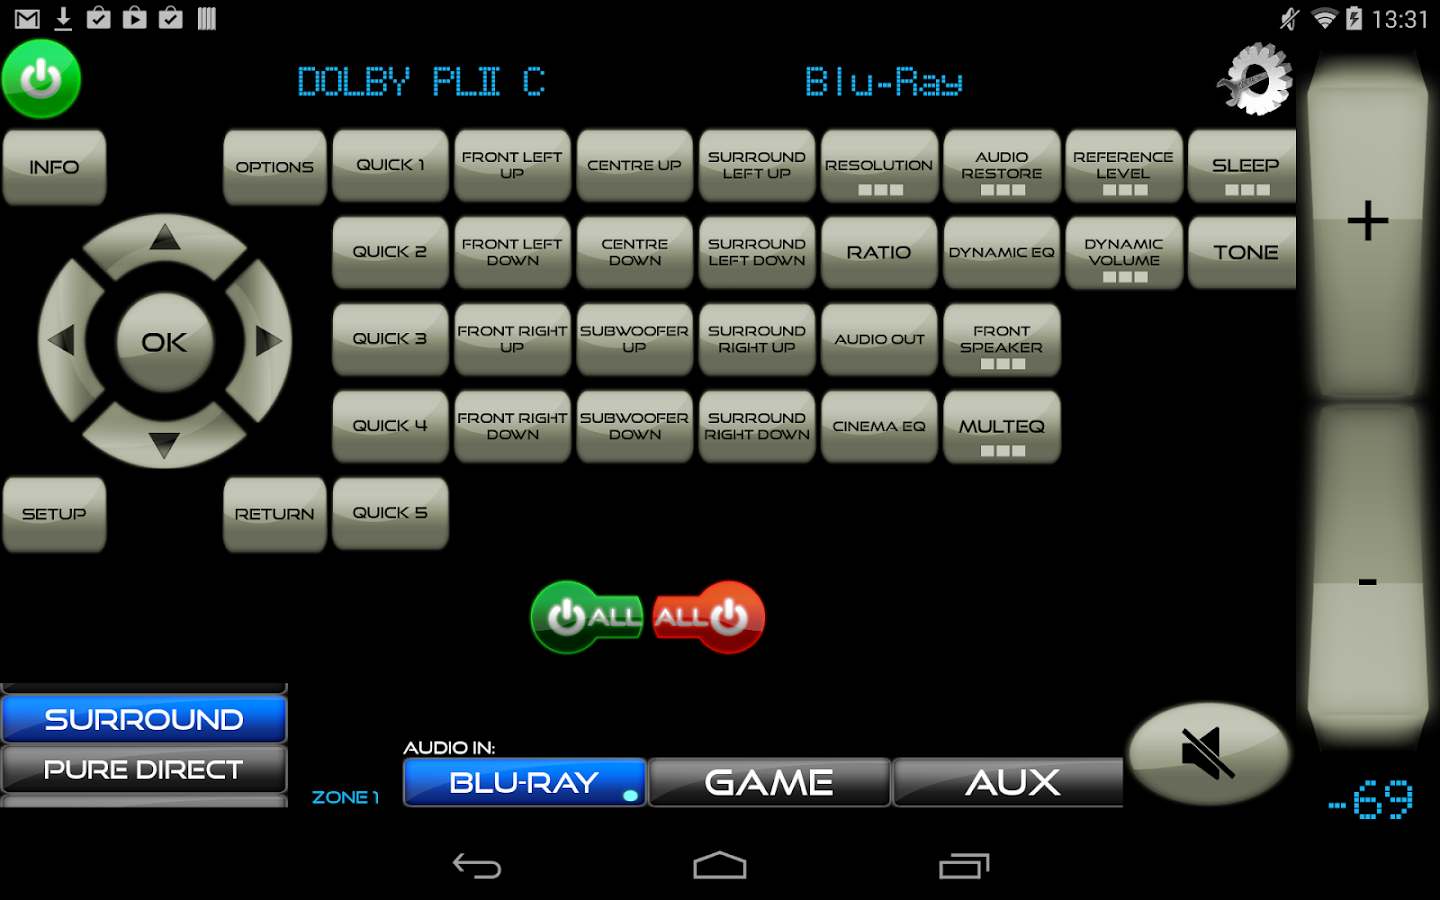 how to set up shaw remote with sony tv